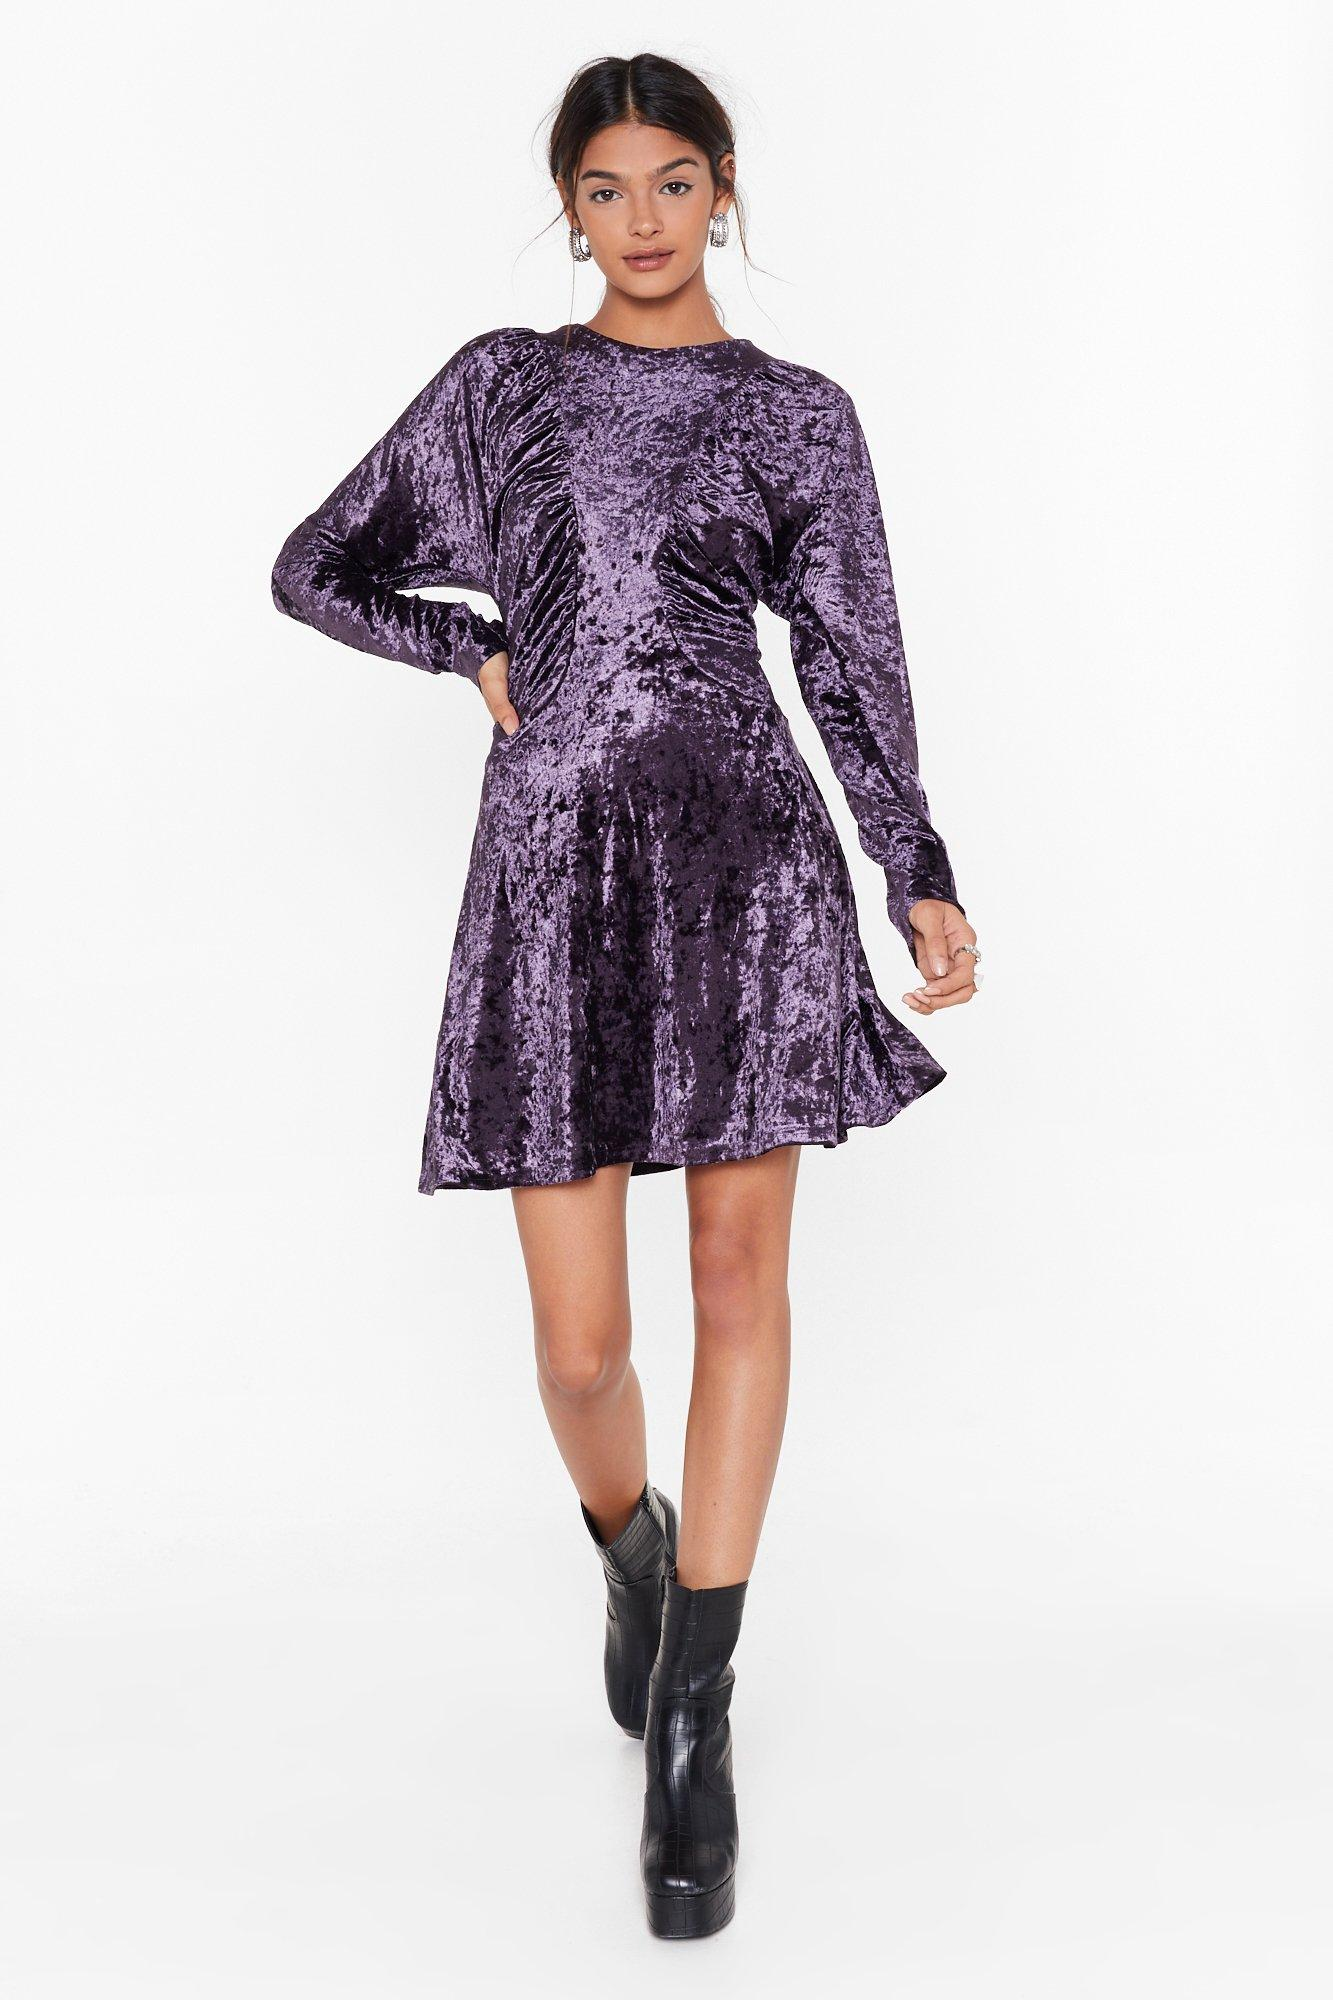 Totally Crushin' On You Velvet Mini Dress by Nasty Gal